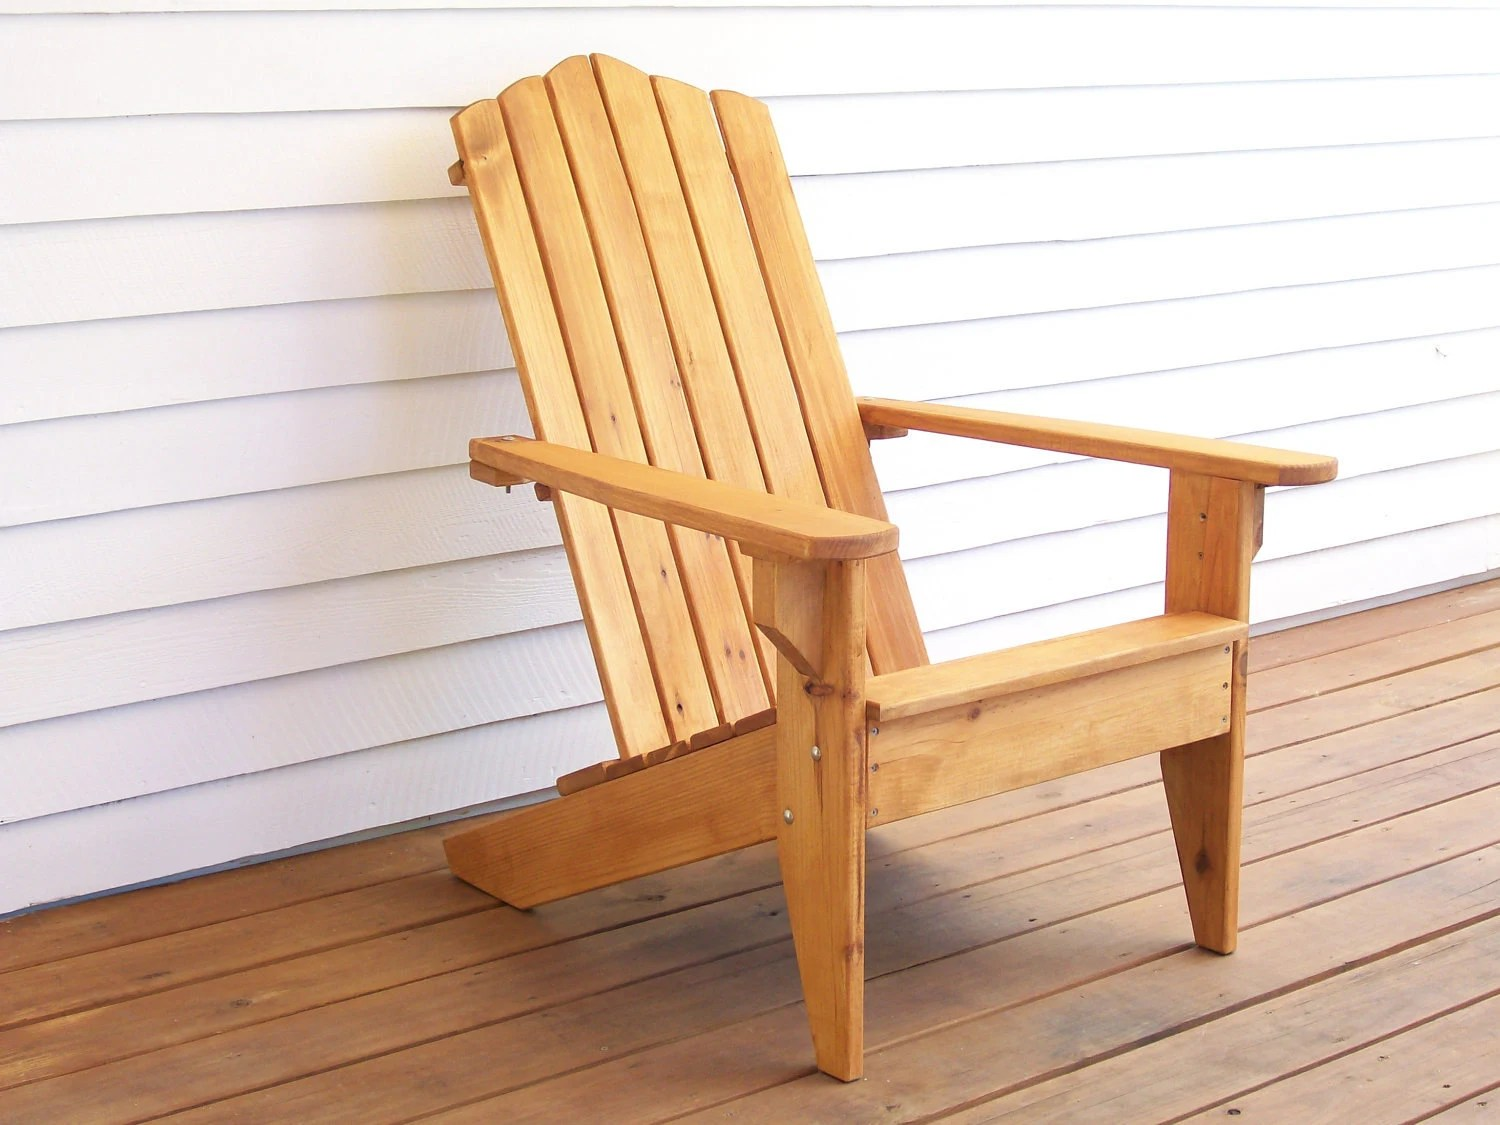 Outdoor Wooden Chairs Outdoor Wood Chair Adirondack Furniture Outdoor By